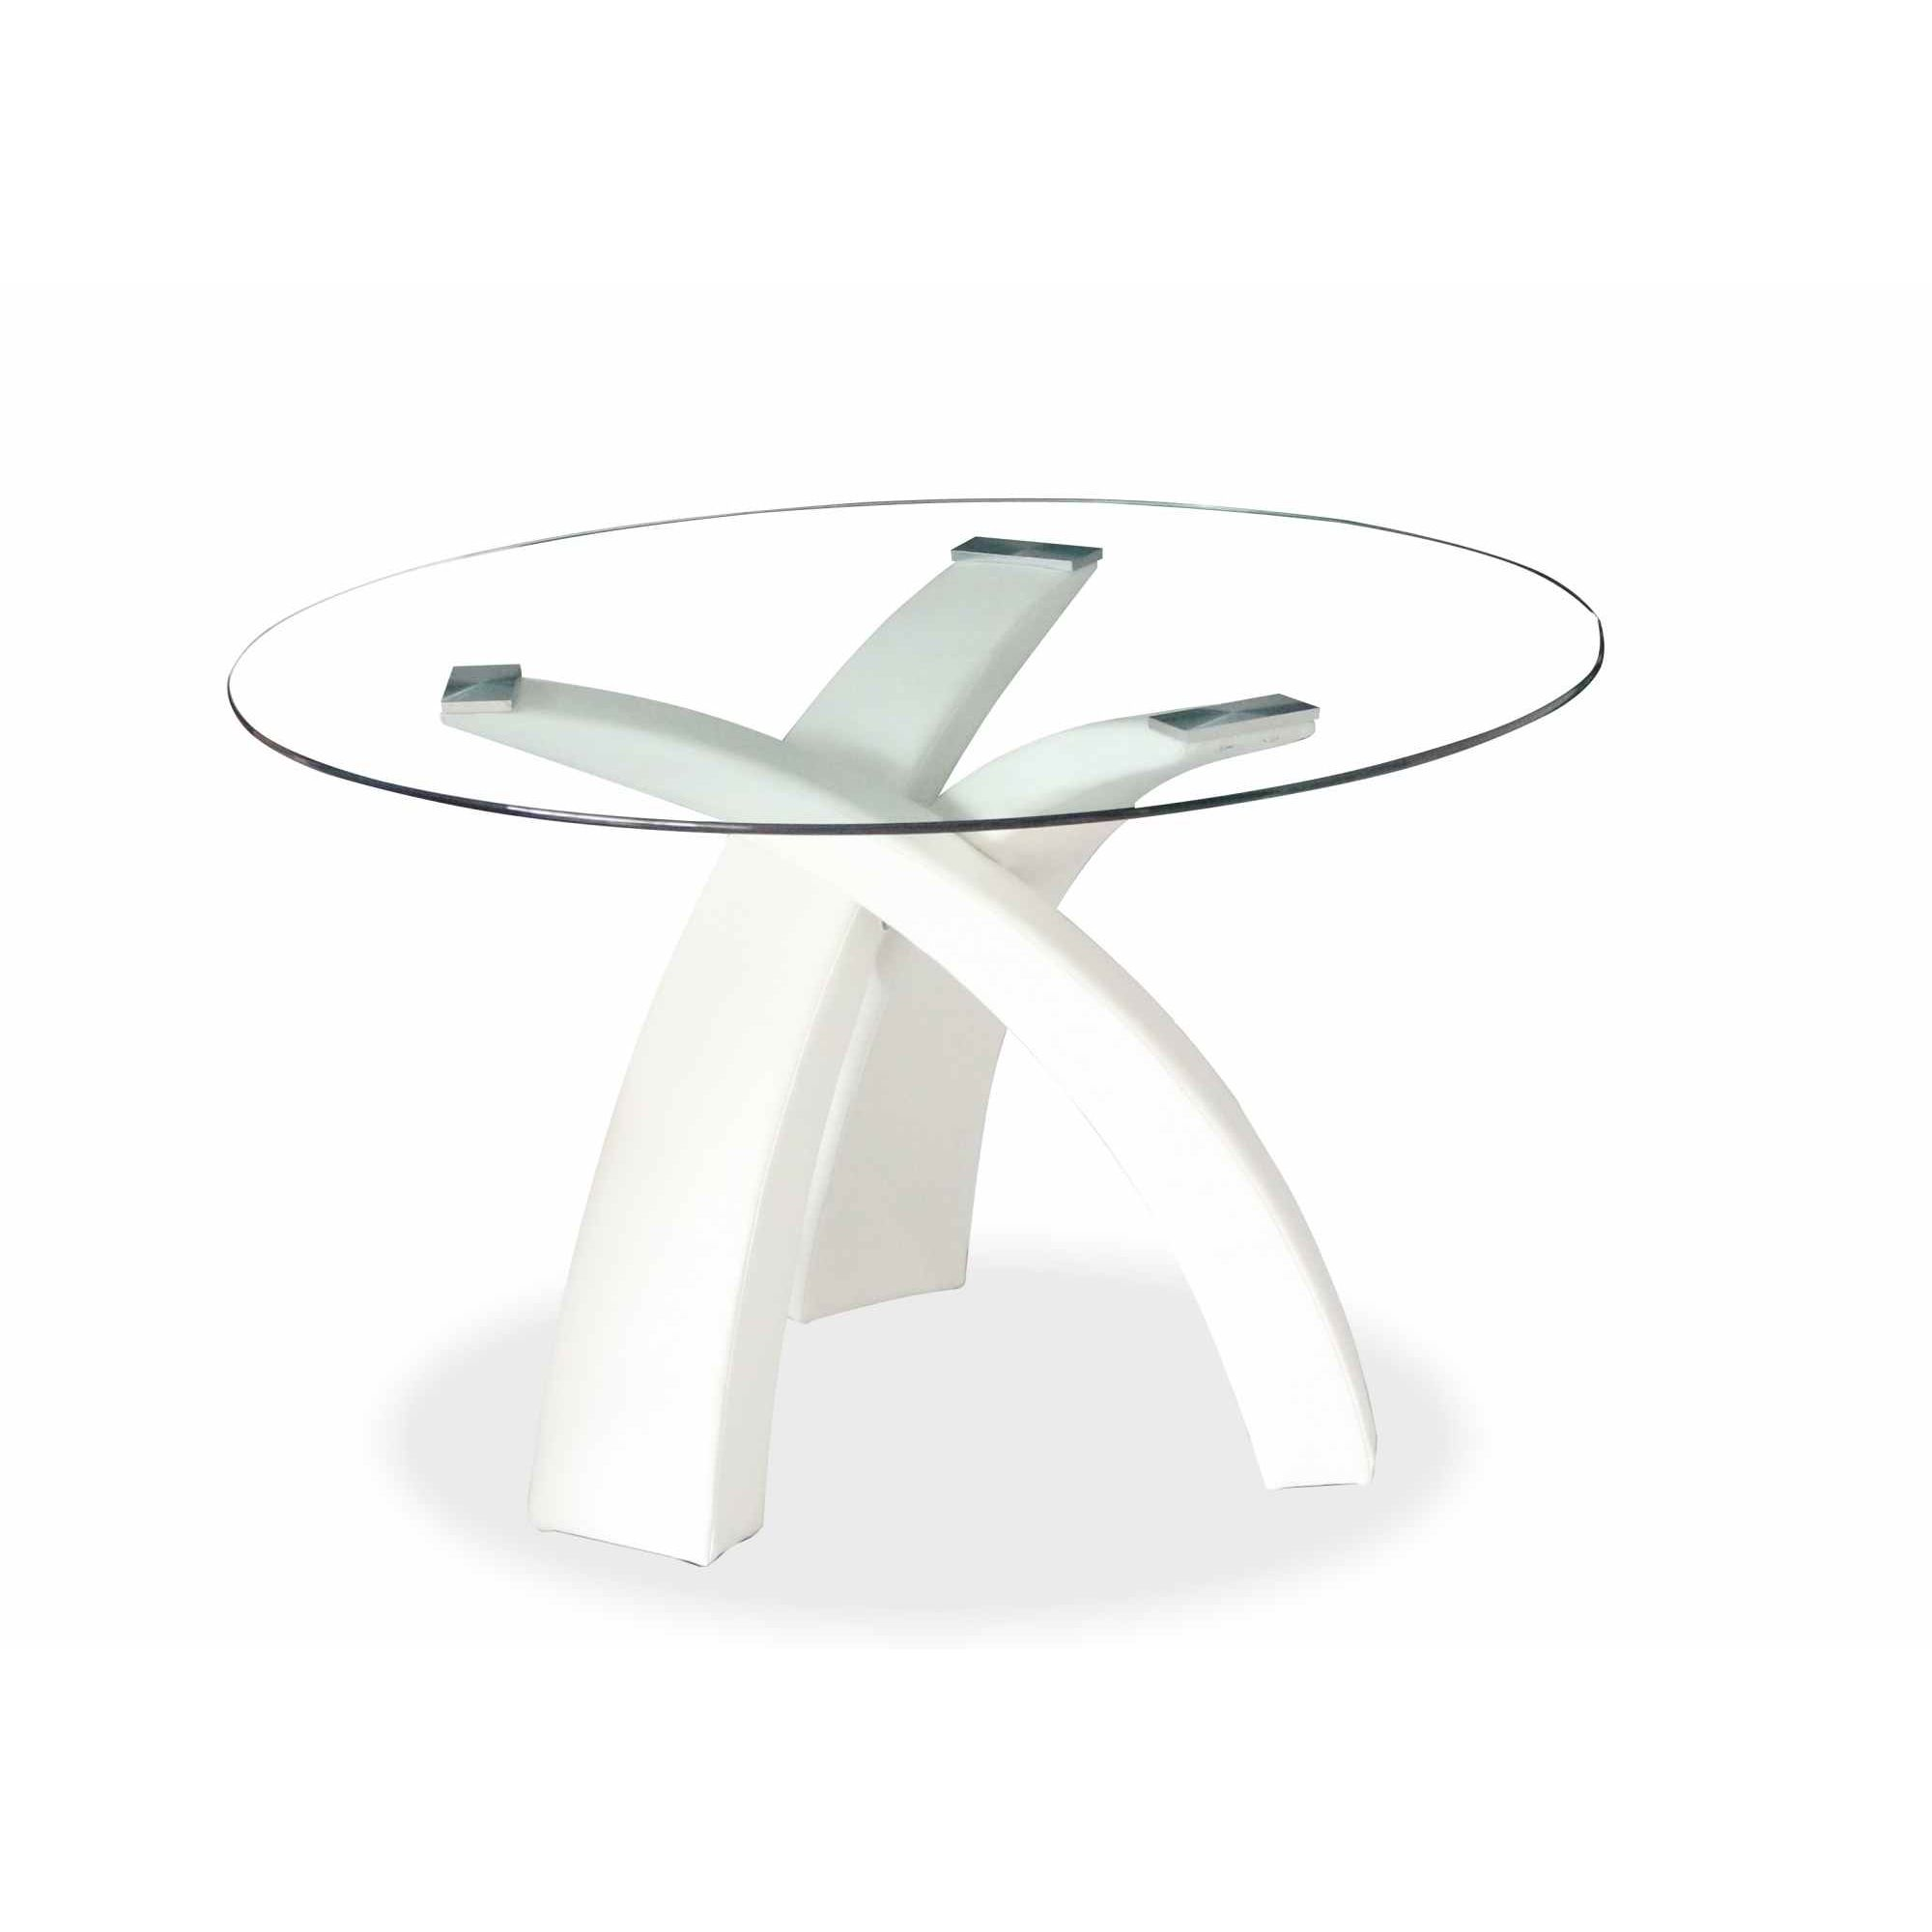 Emejing table a manger blanche ronde contemporary for Table ronde blanche